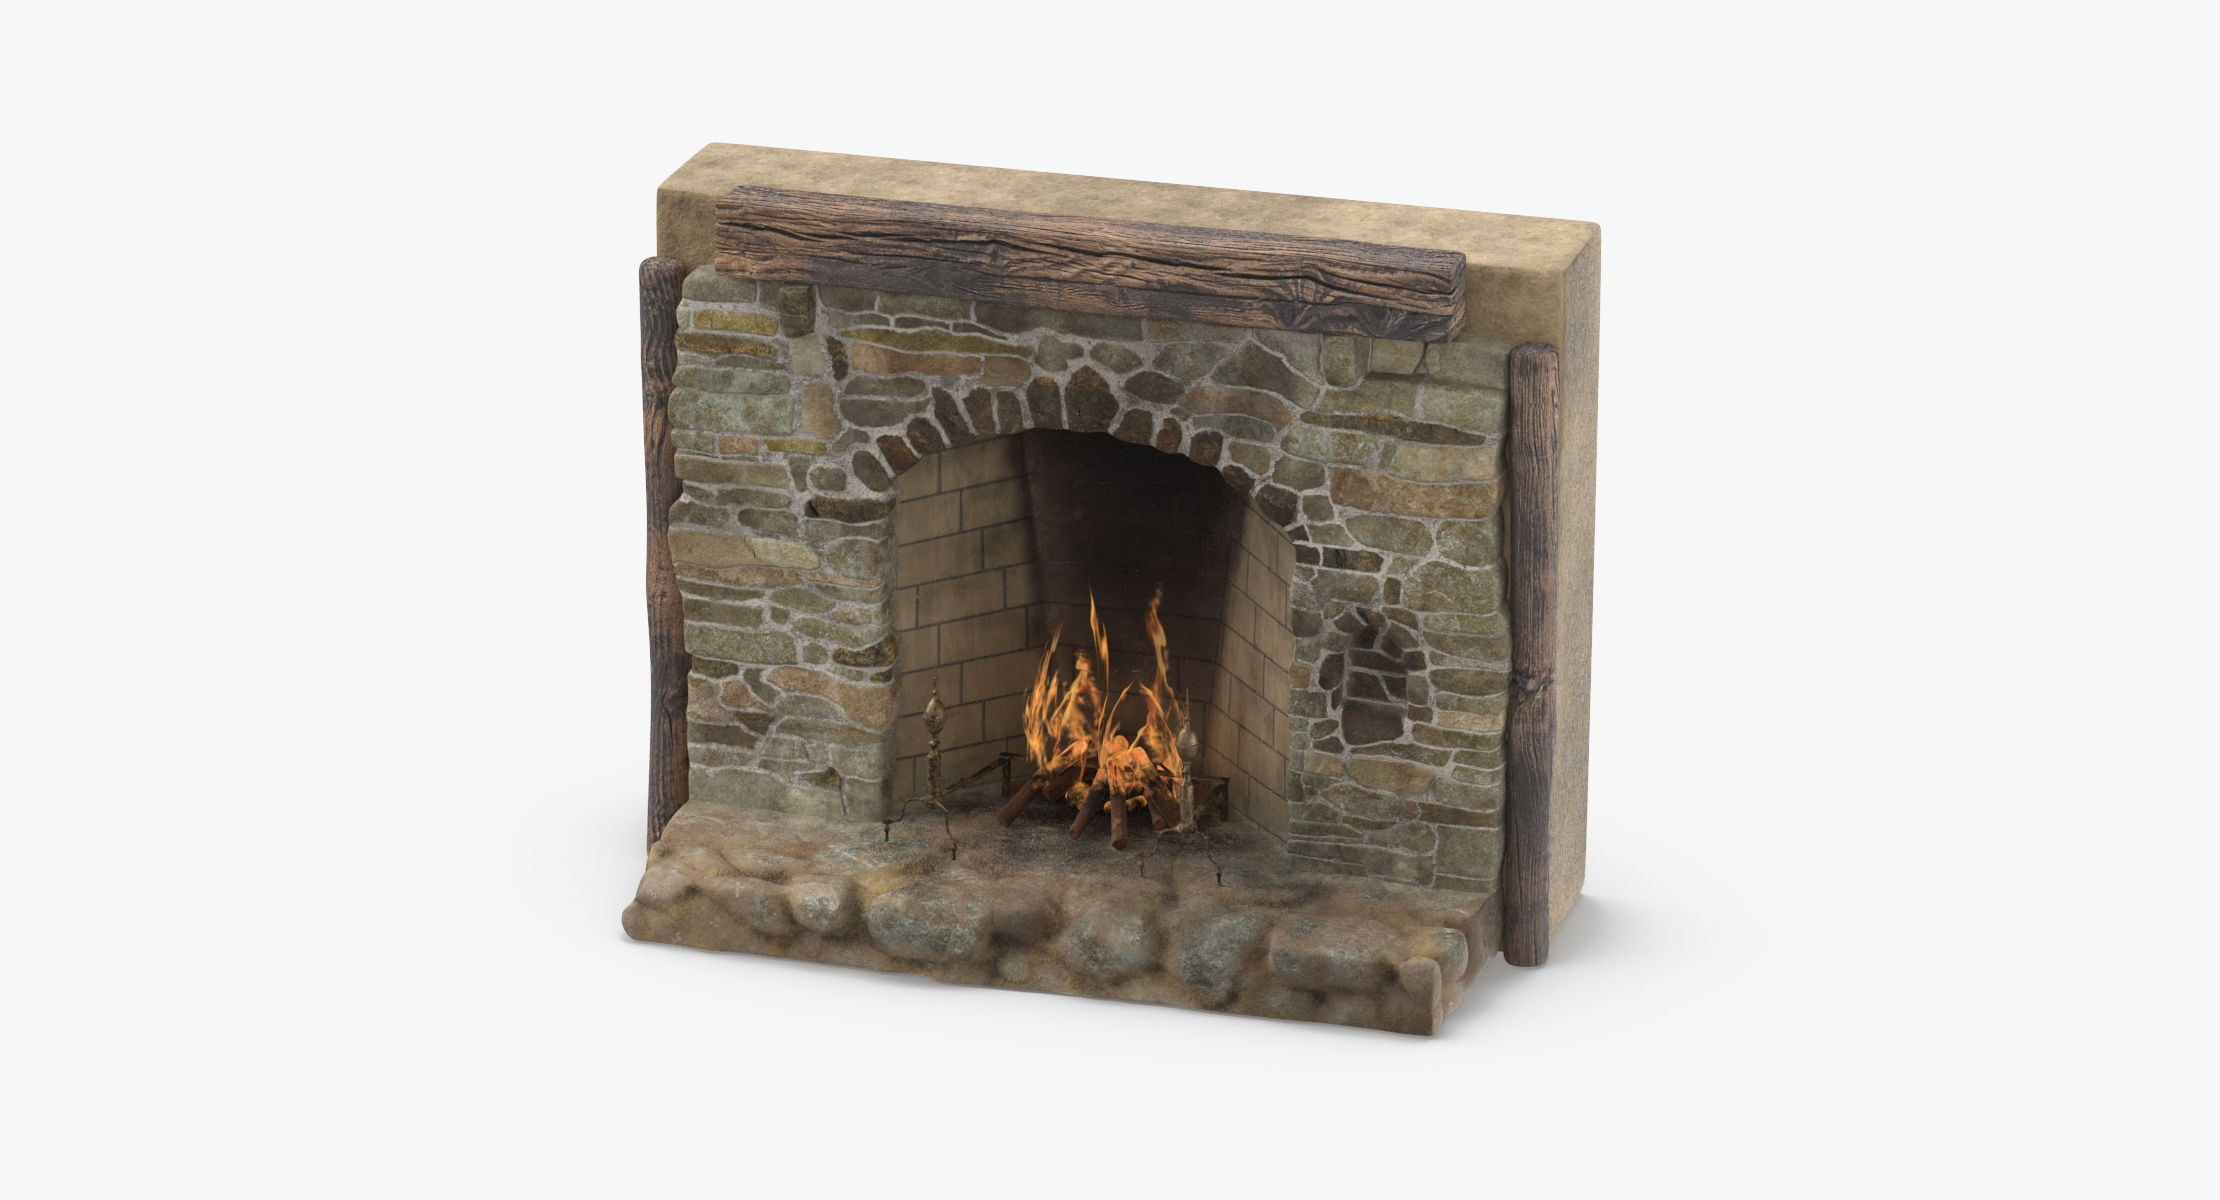 Medieval Fireplace - reel 1